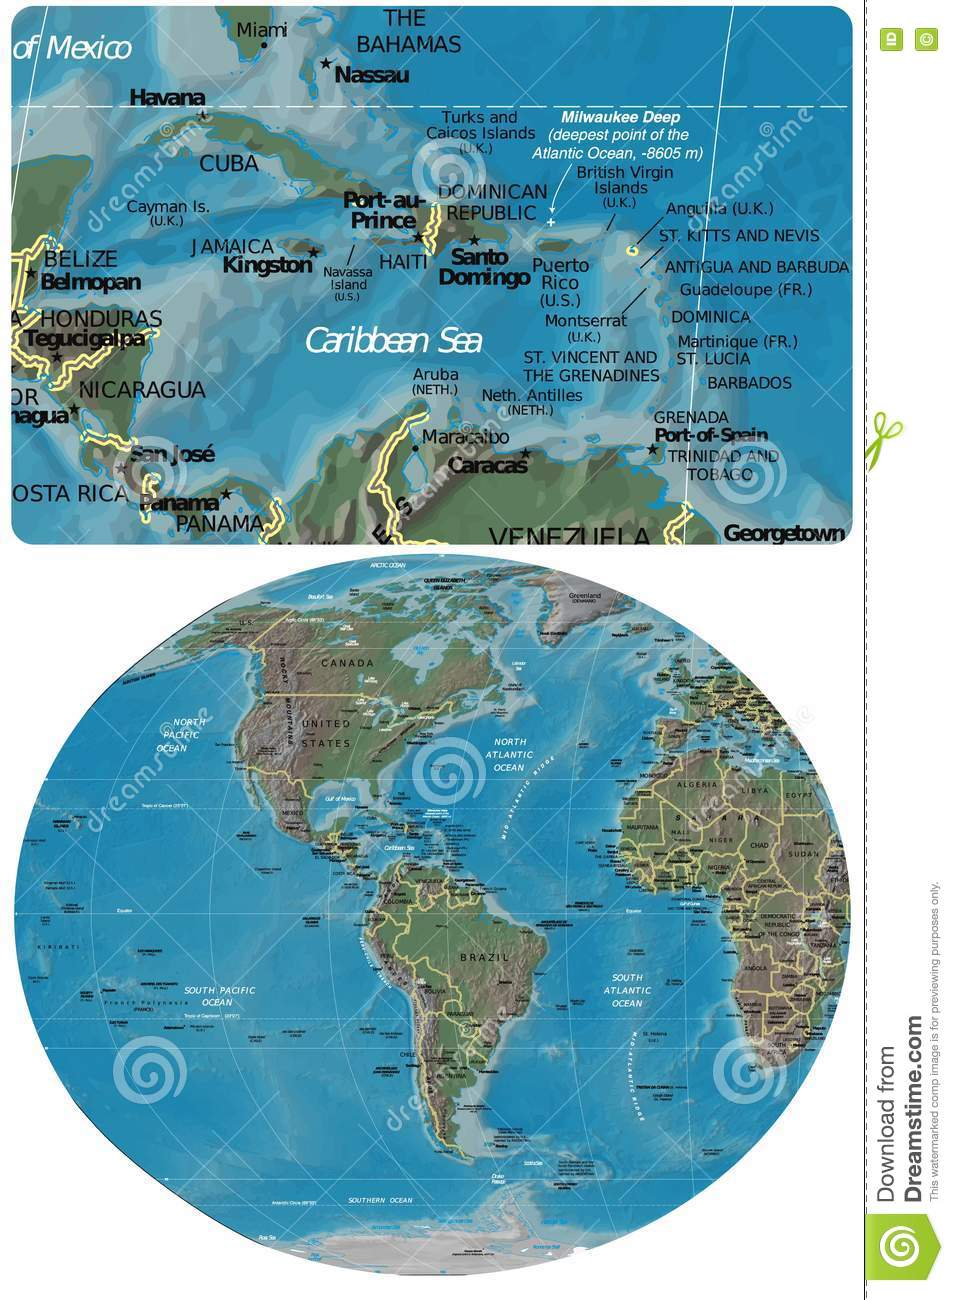 The Caribbean And The Americas Map Stock Illustration ... on greece map, caribbean island cruise, caribbean island names, jamaica map, tanzania map, bahrain map, virgin islands map, south america map, puerto rico map, dominican republic map, central america map, belgium map, panama map, netherlands map, georgia map, san juan islands map, iraq map, brazil map, japan map, italy map,